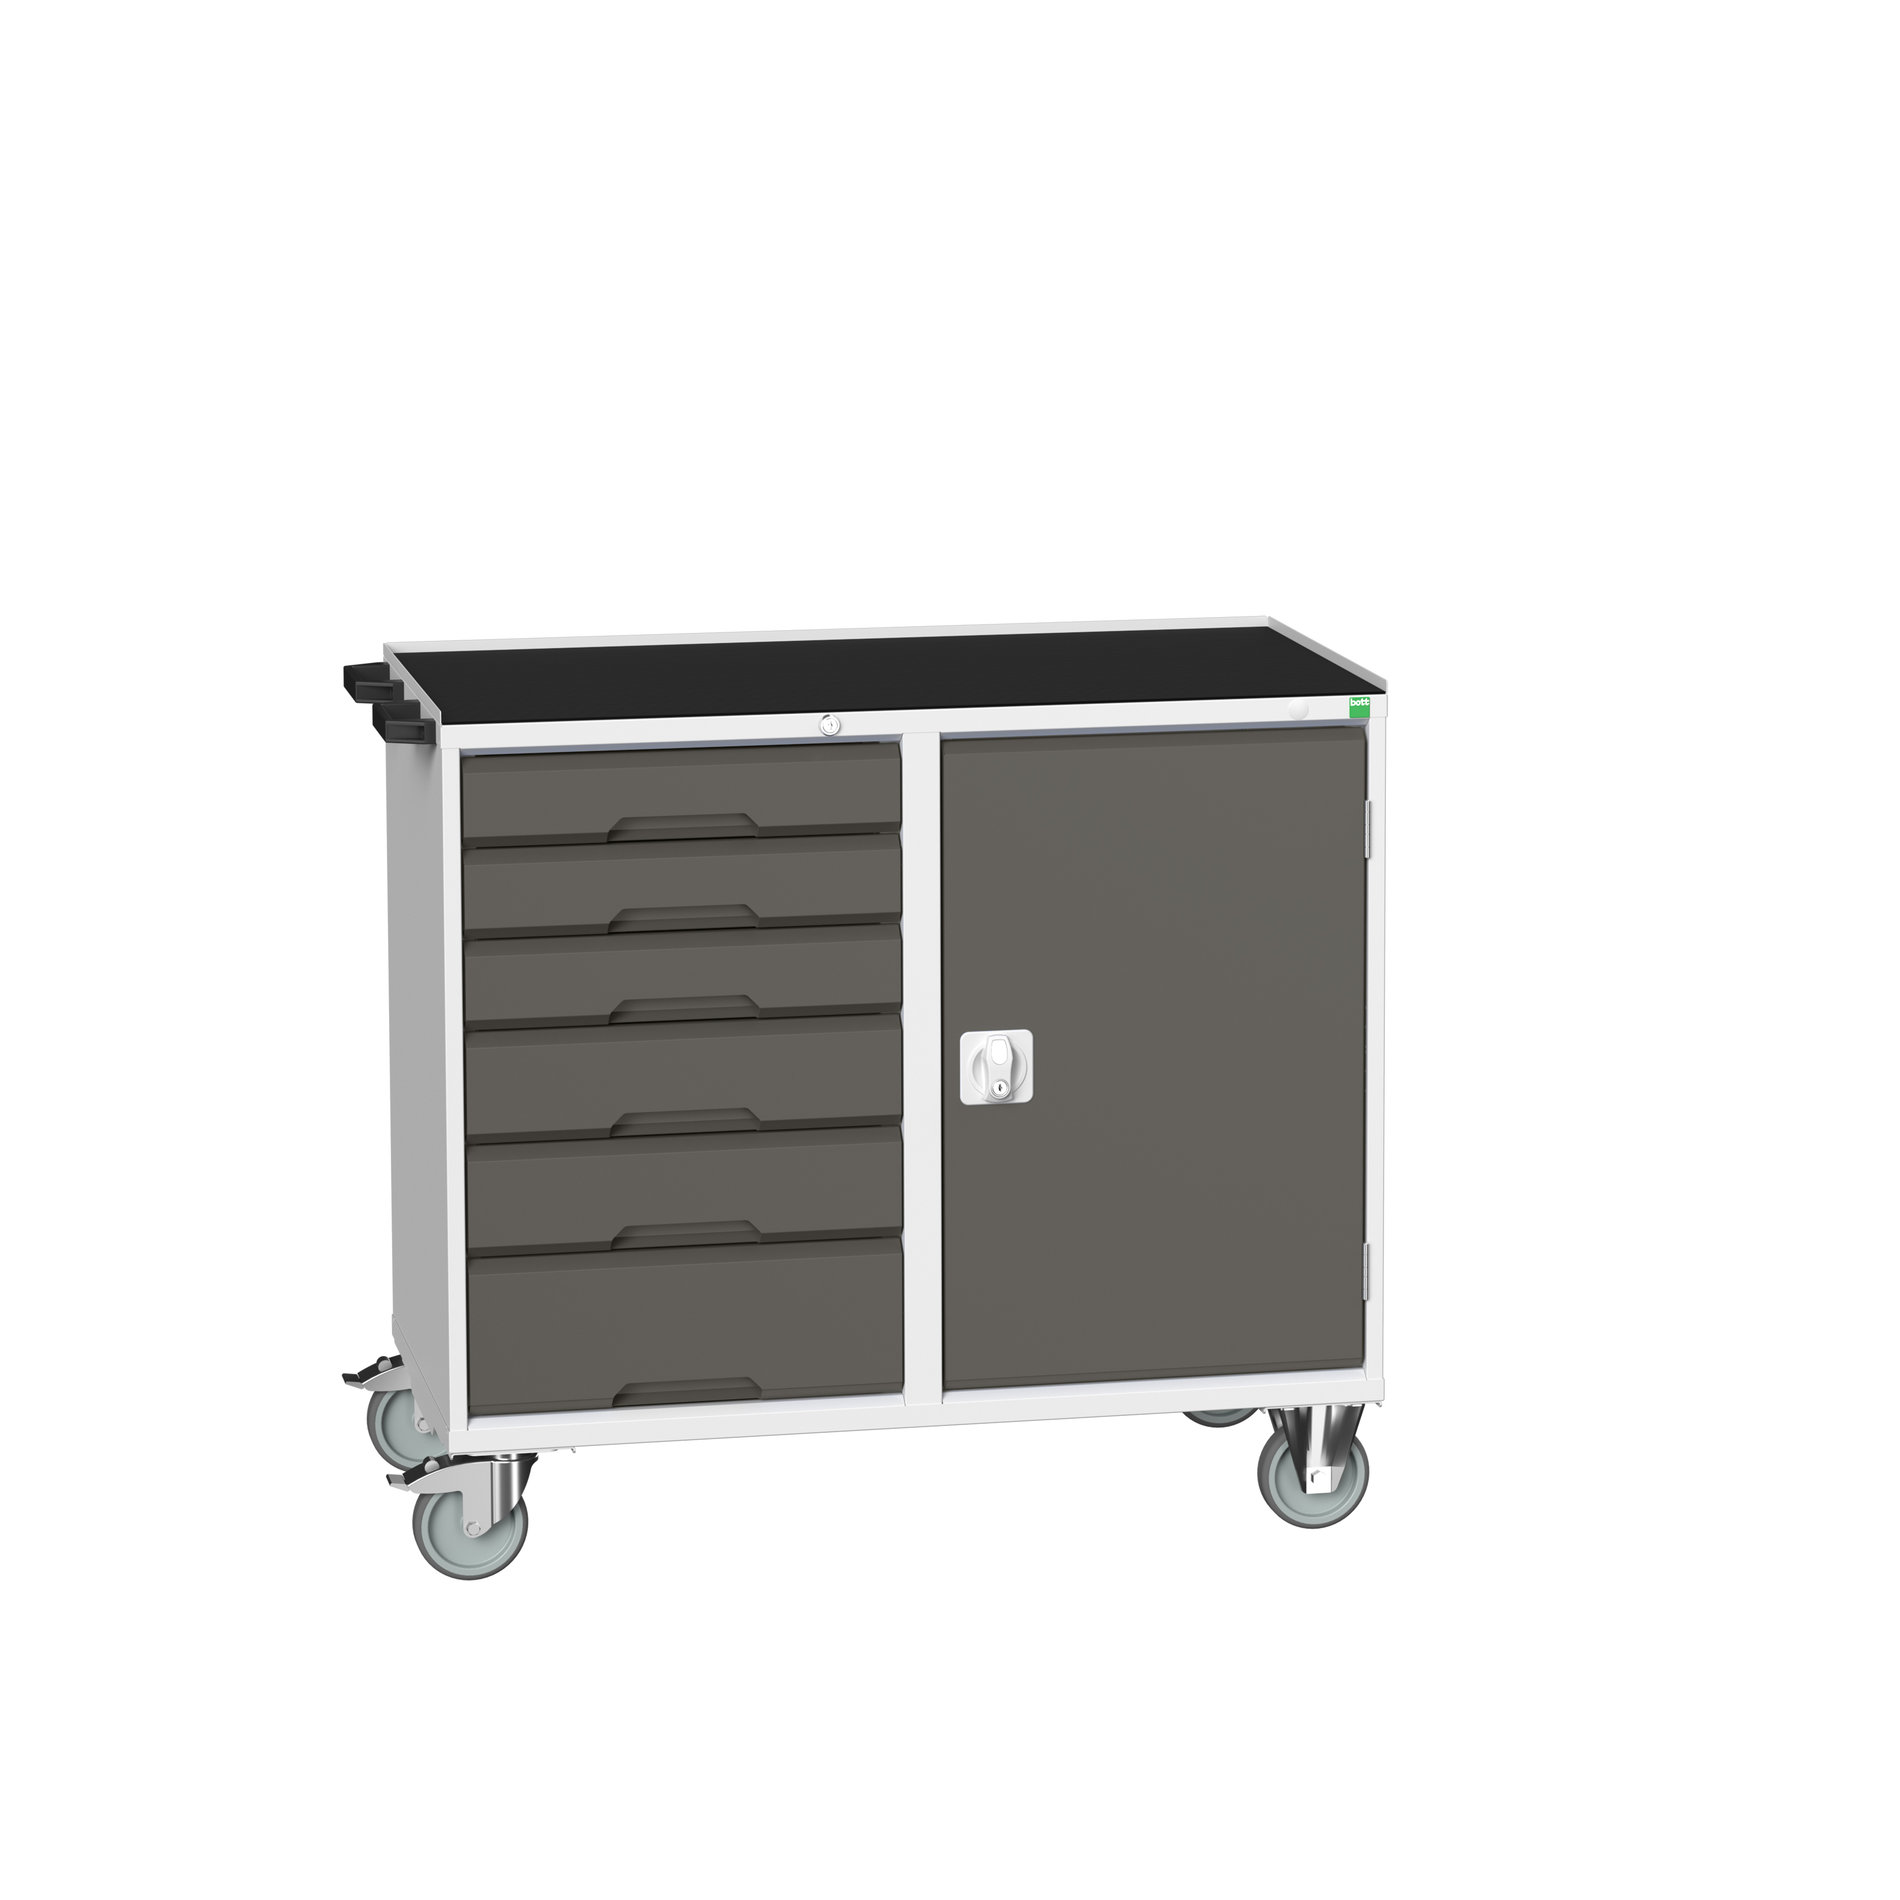 Bott Verso Maintenance Trolley With 6 Drawers / Cupboard & Top Tray With Mat